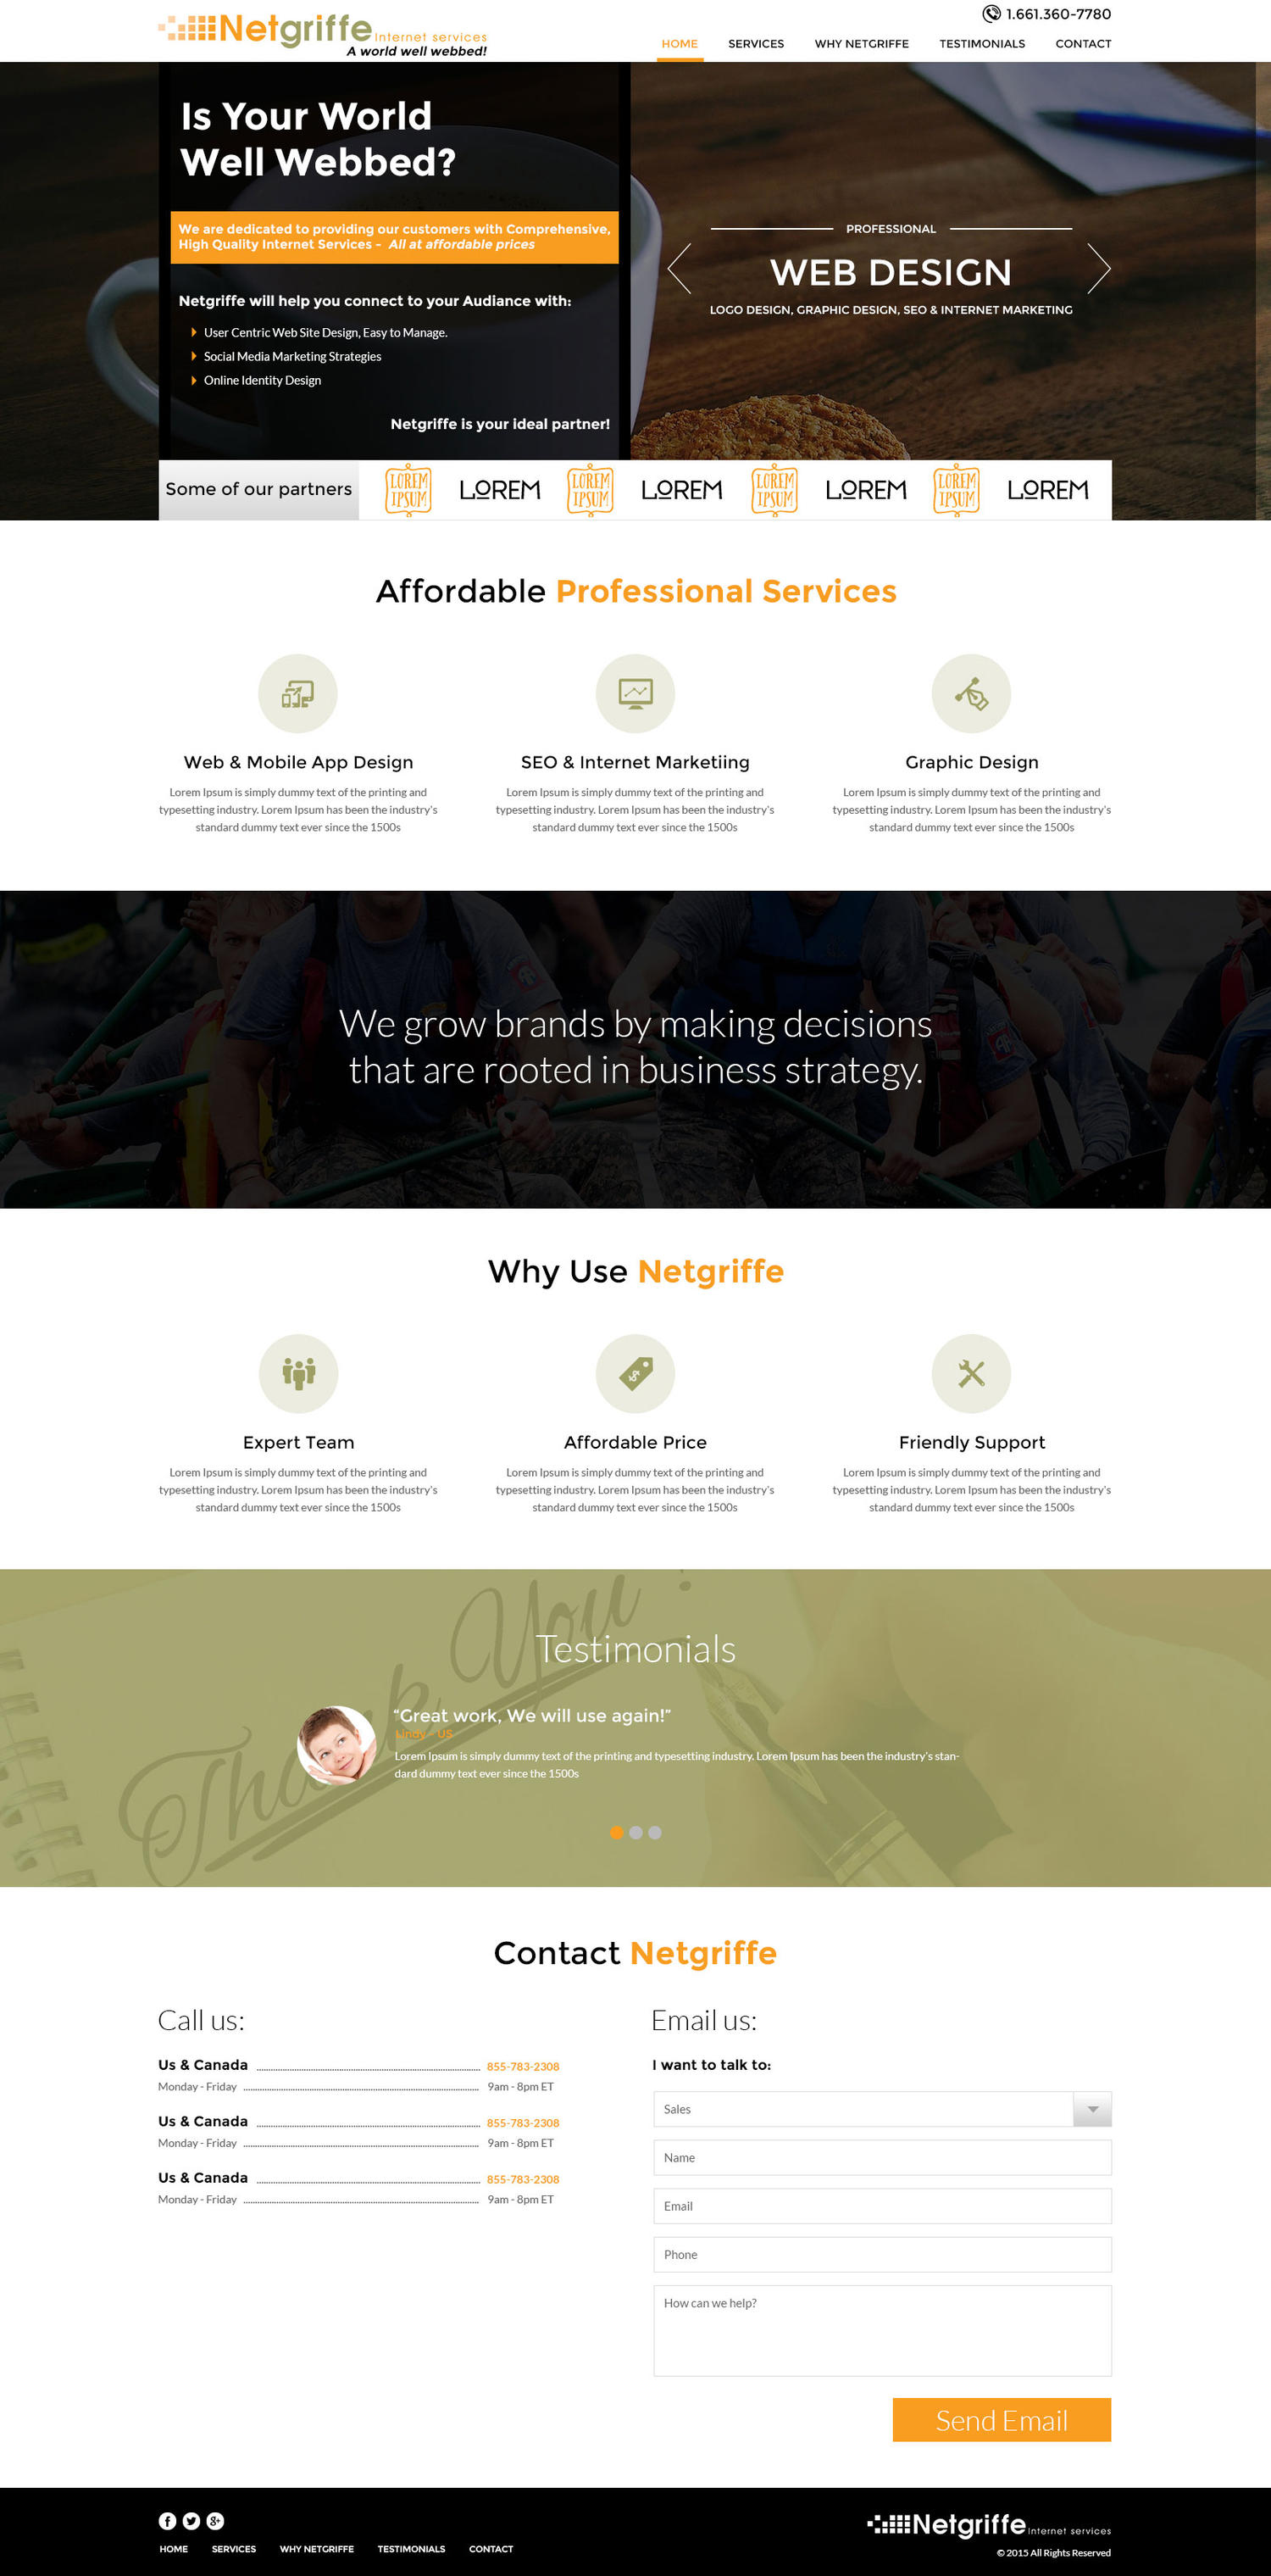 Onepage Website Design by BarwalDesigns - 101427